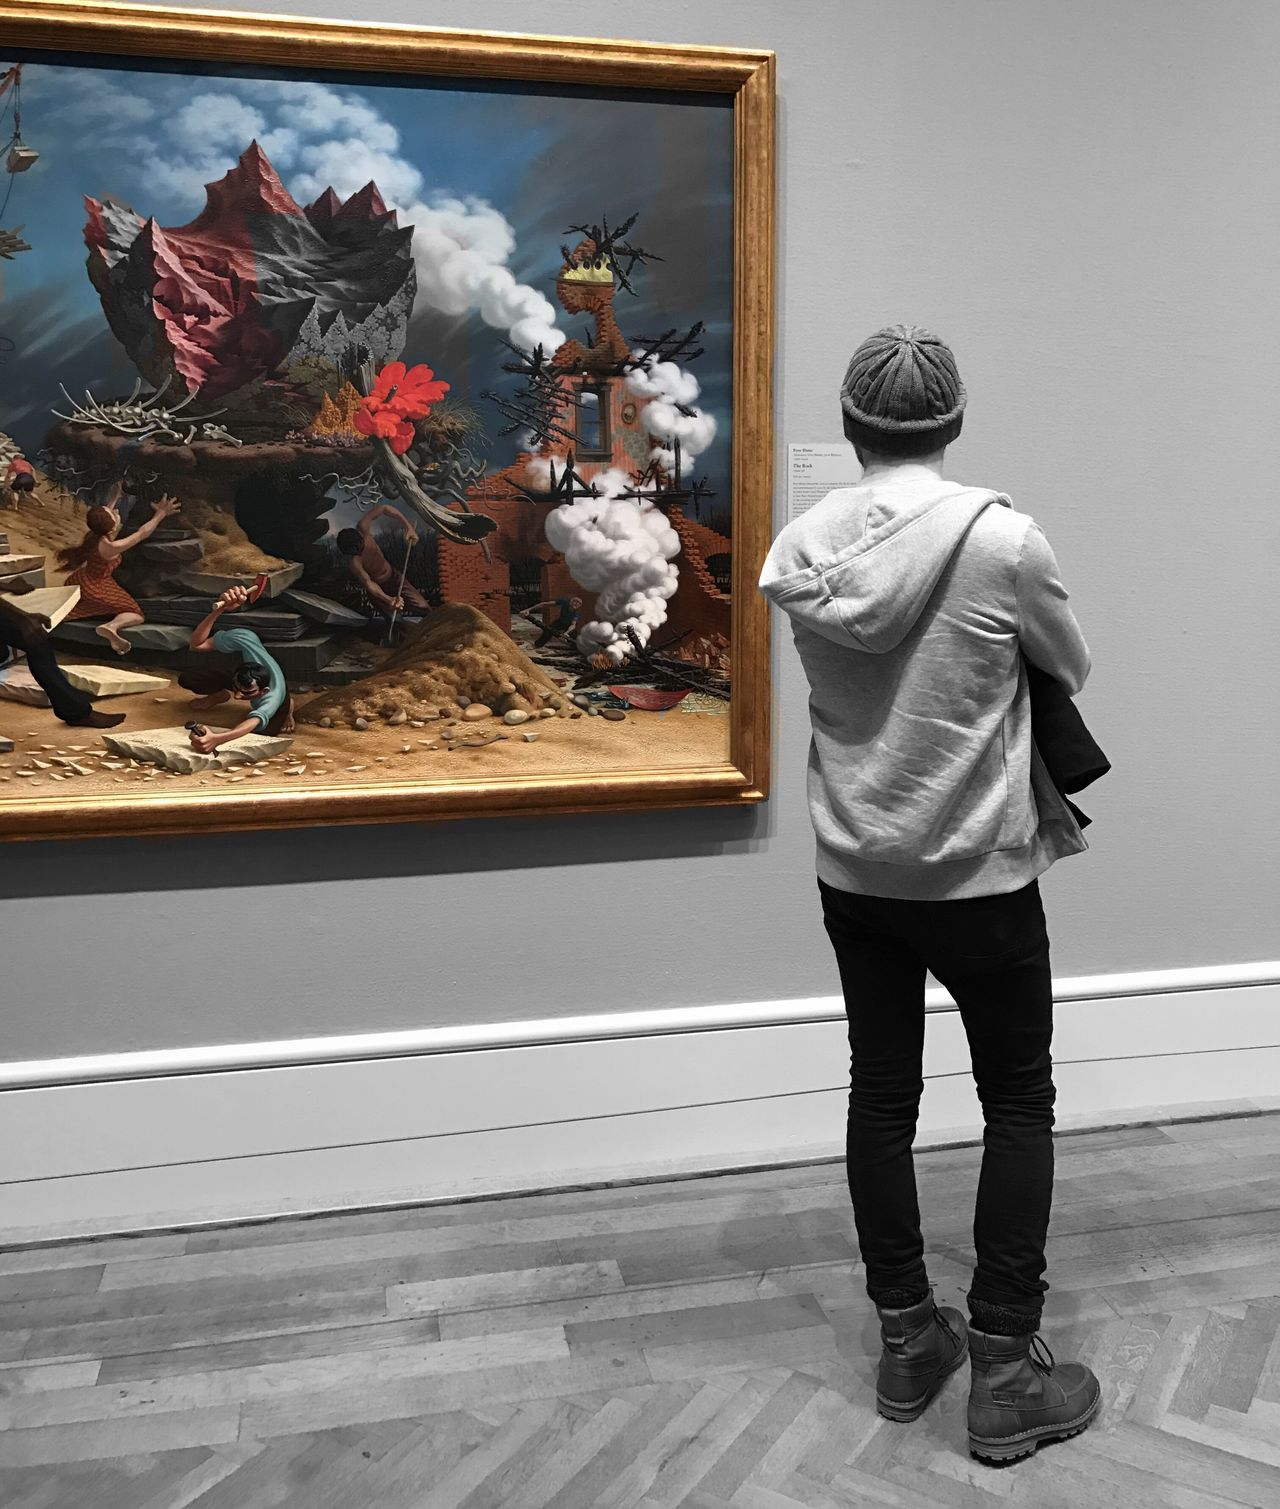 The Rock Destruction Reconstruction 🌋🌋Peter Blume 💨⚡️ Artist Art Gallery Oil Painting Chicago Art Institute Of Chicago People People Watching Museum Loop Urbanexploration Urban Culture Art Appreciation Observing Urbanphotography IPhoneography City Life Explore EyeEm Best Shots EyeEm Gallery EyeEmBestPics One Man Only 🔥🔥⚡️